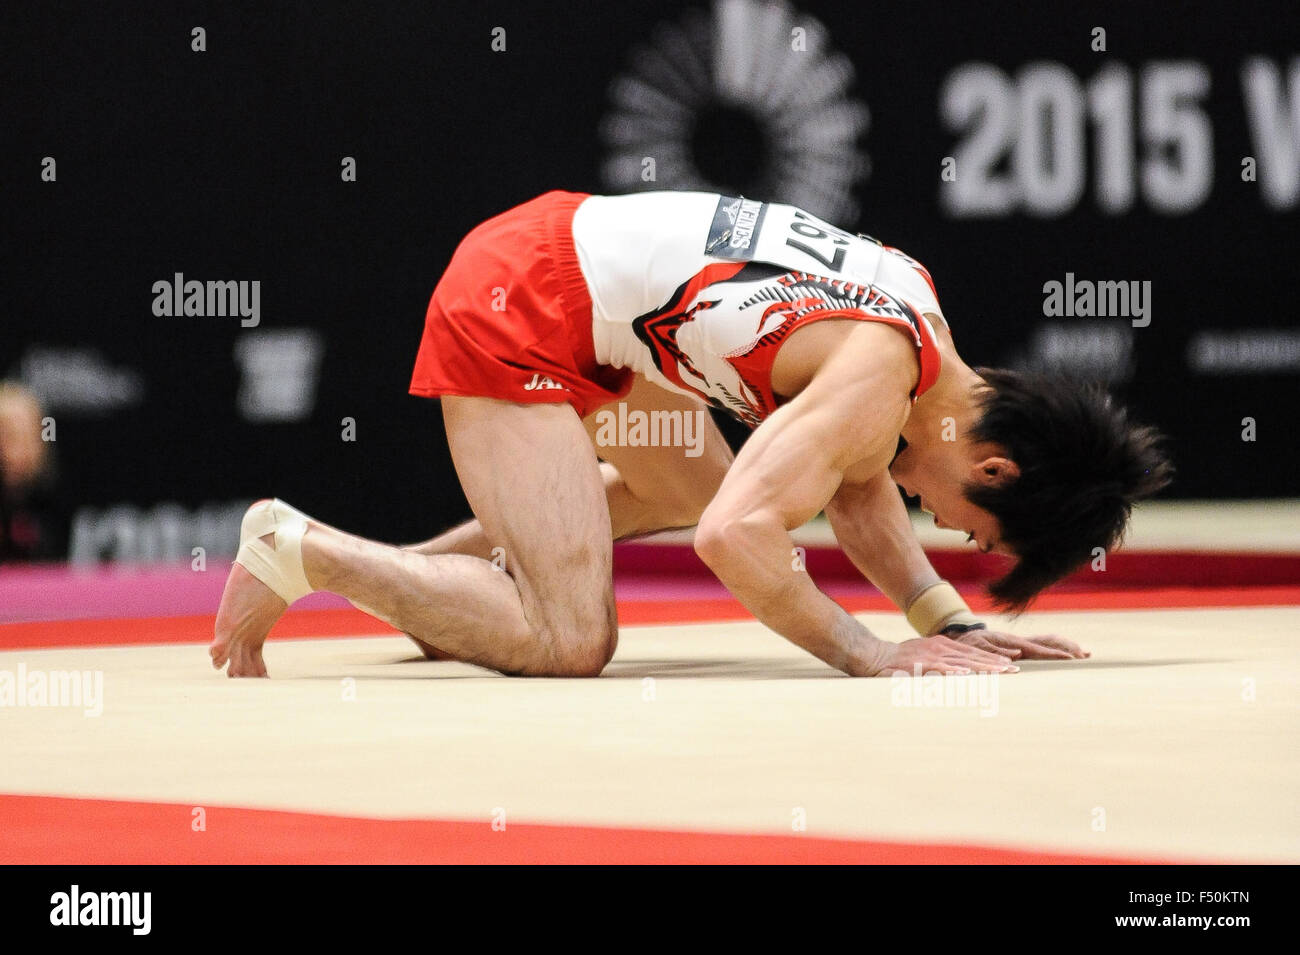 KOHEI UCHIMURA from Japan competes on the floor during the preliminary round of the 2015 World Gymnastics Championships - Stock Image